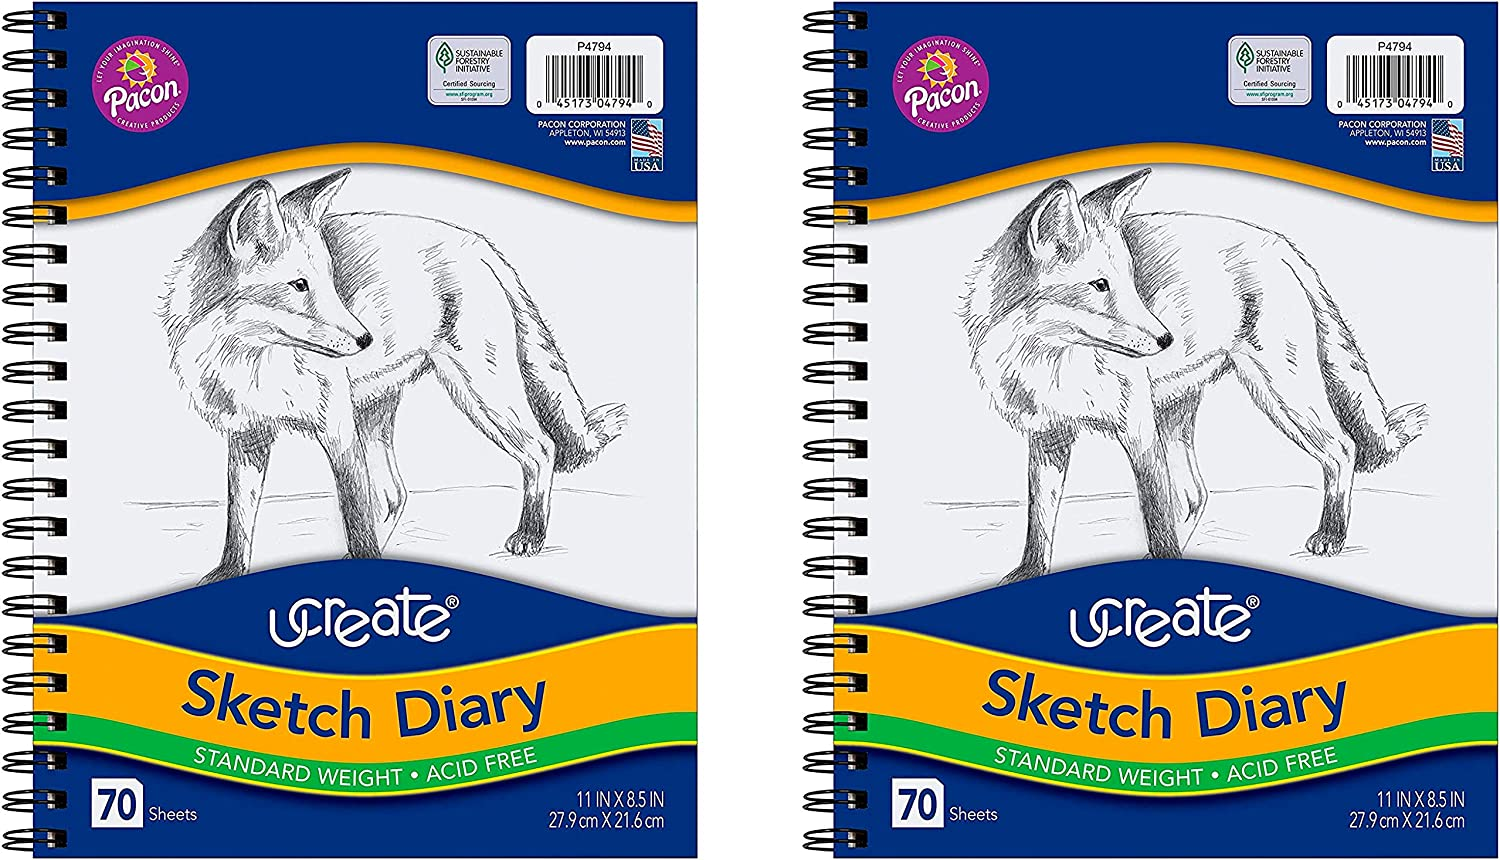 8.5 x 11 Pacon 4794 UCreate Sketch Diary 70 Sheets 2 Pack